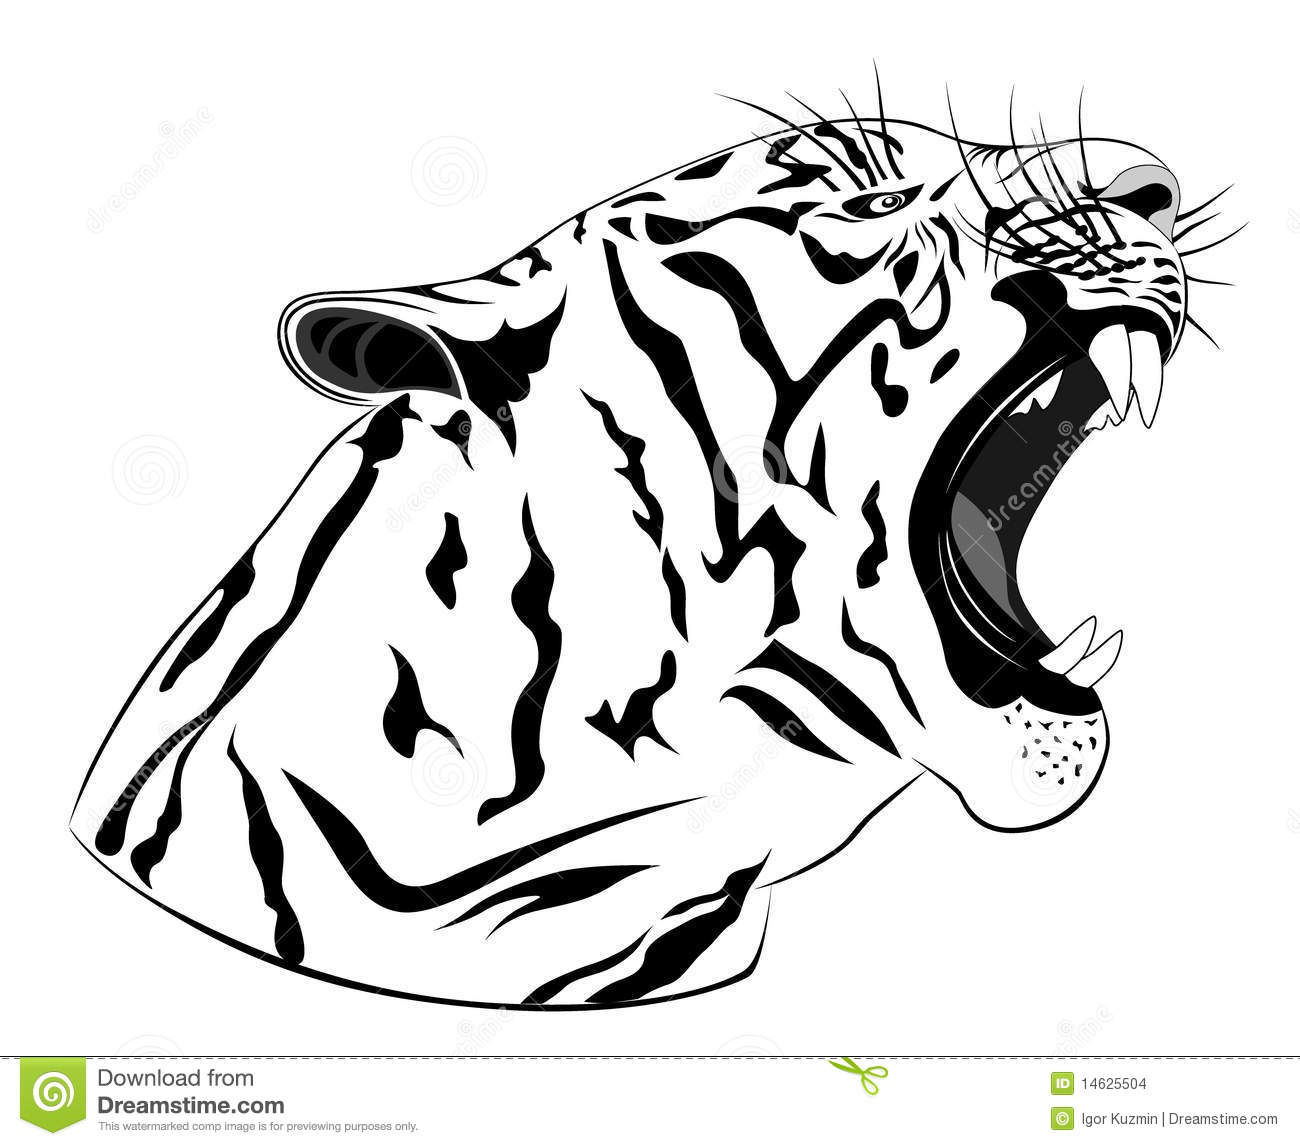 Free vector graphic tiger predator cat big cat free image on - Tiger Tattoo Stock Images Image 14625504